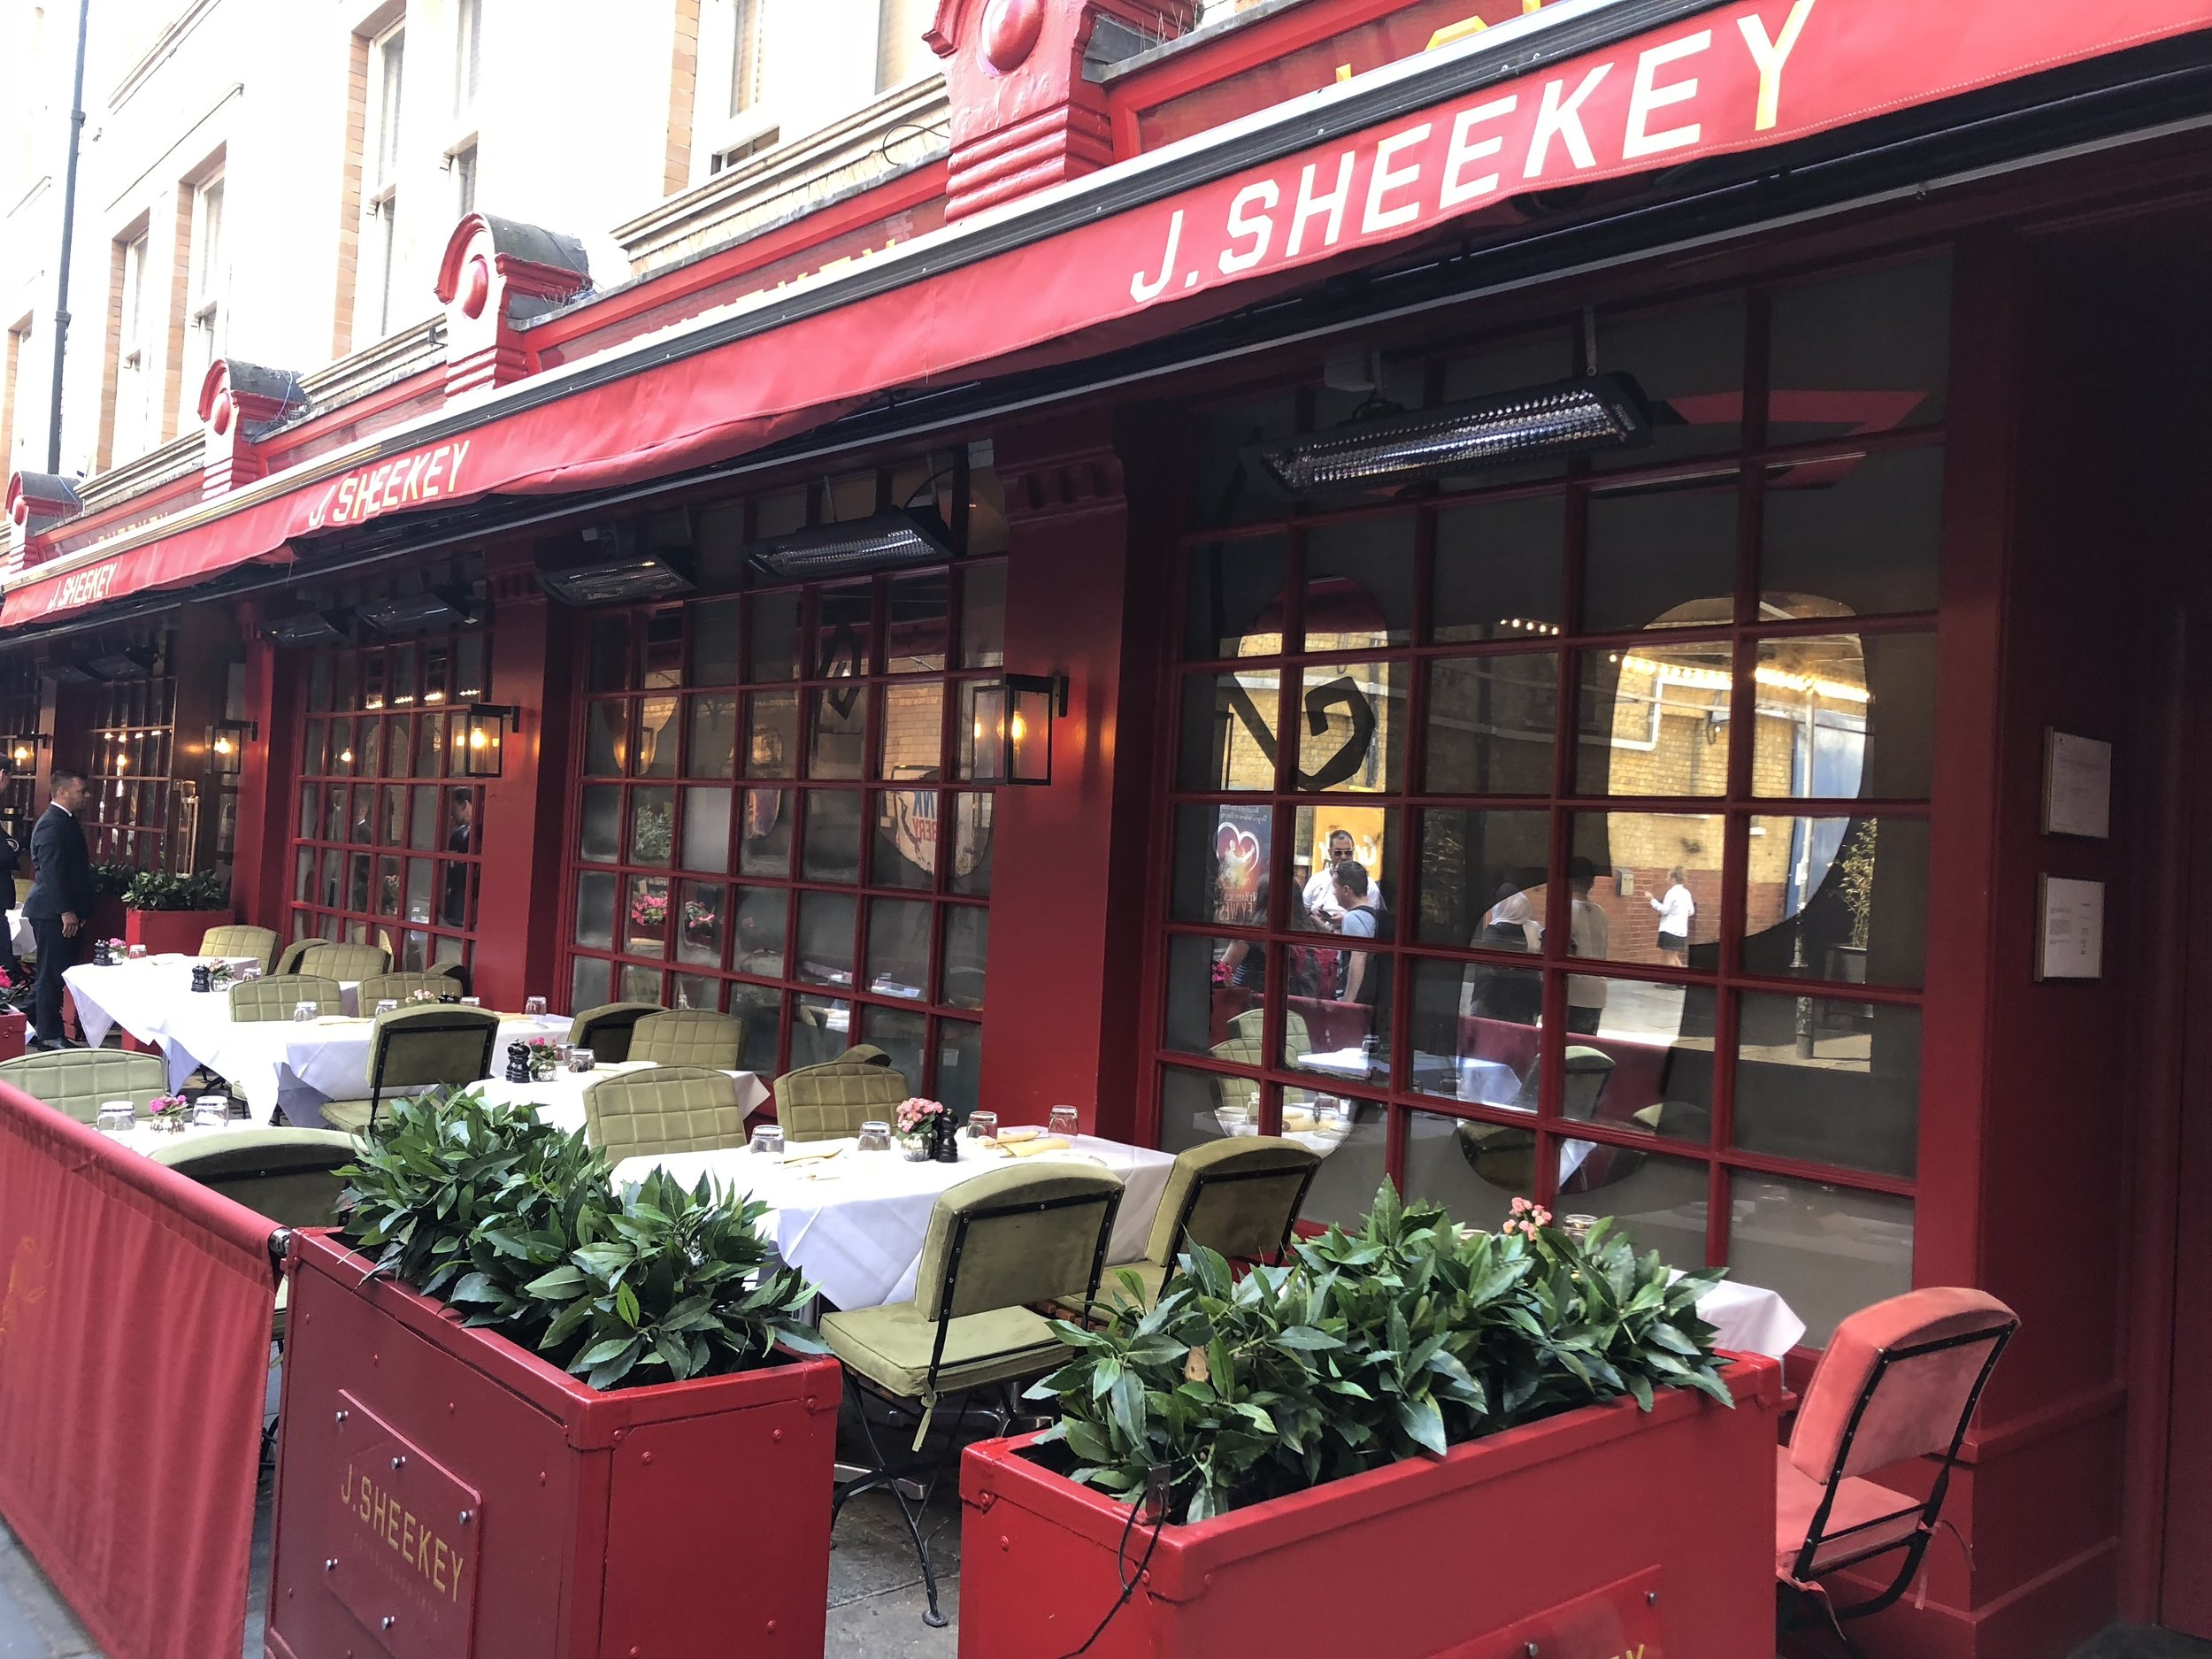 J Sheeky, the apparently esteemed London eatery (movie stars eat here).